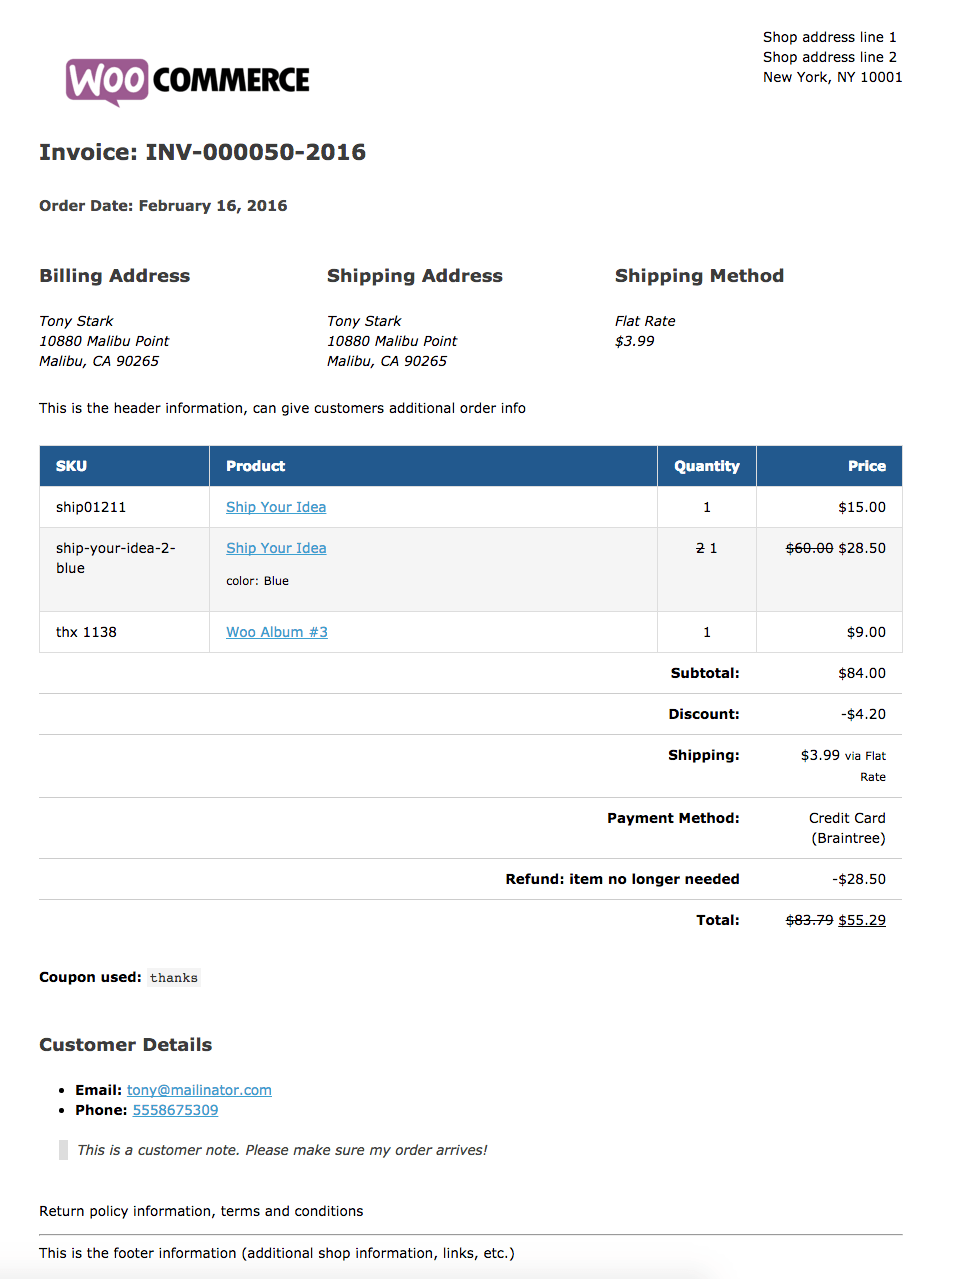 Pigbrotherus  Surprising Woocommerce Print Invoices Amp Packing Lists  Woocommerce Docs With Gorgeous Sample Invoice With Delightful Read Receipts Gmail Also Shopping Receipt In Addition Sevis Fee Receipt And Fake Receipts As Well As Hb Receipt Additionally Child Care Receipt From Docswoocommercecom With Pigbrotherus  Gorgeous Woocommerce Print Invoices Amp Packing Lists  Woocommerce Docs With Delightful Sample Invoice And Surprising Read Receipts Gmail Also Shopping Receipt In Addition Sevis Fee Receipt From Docswoocommercecom